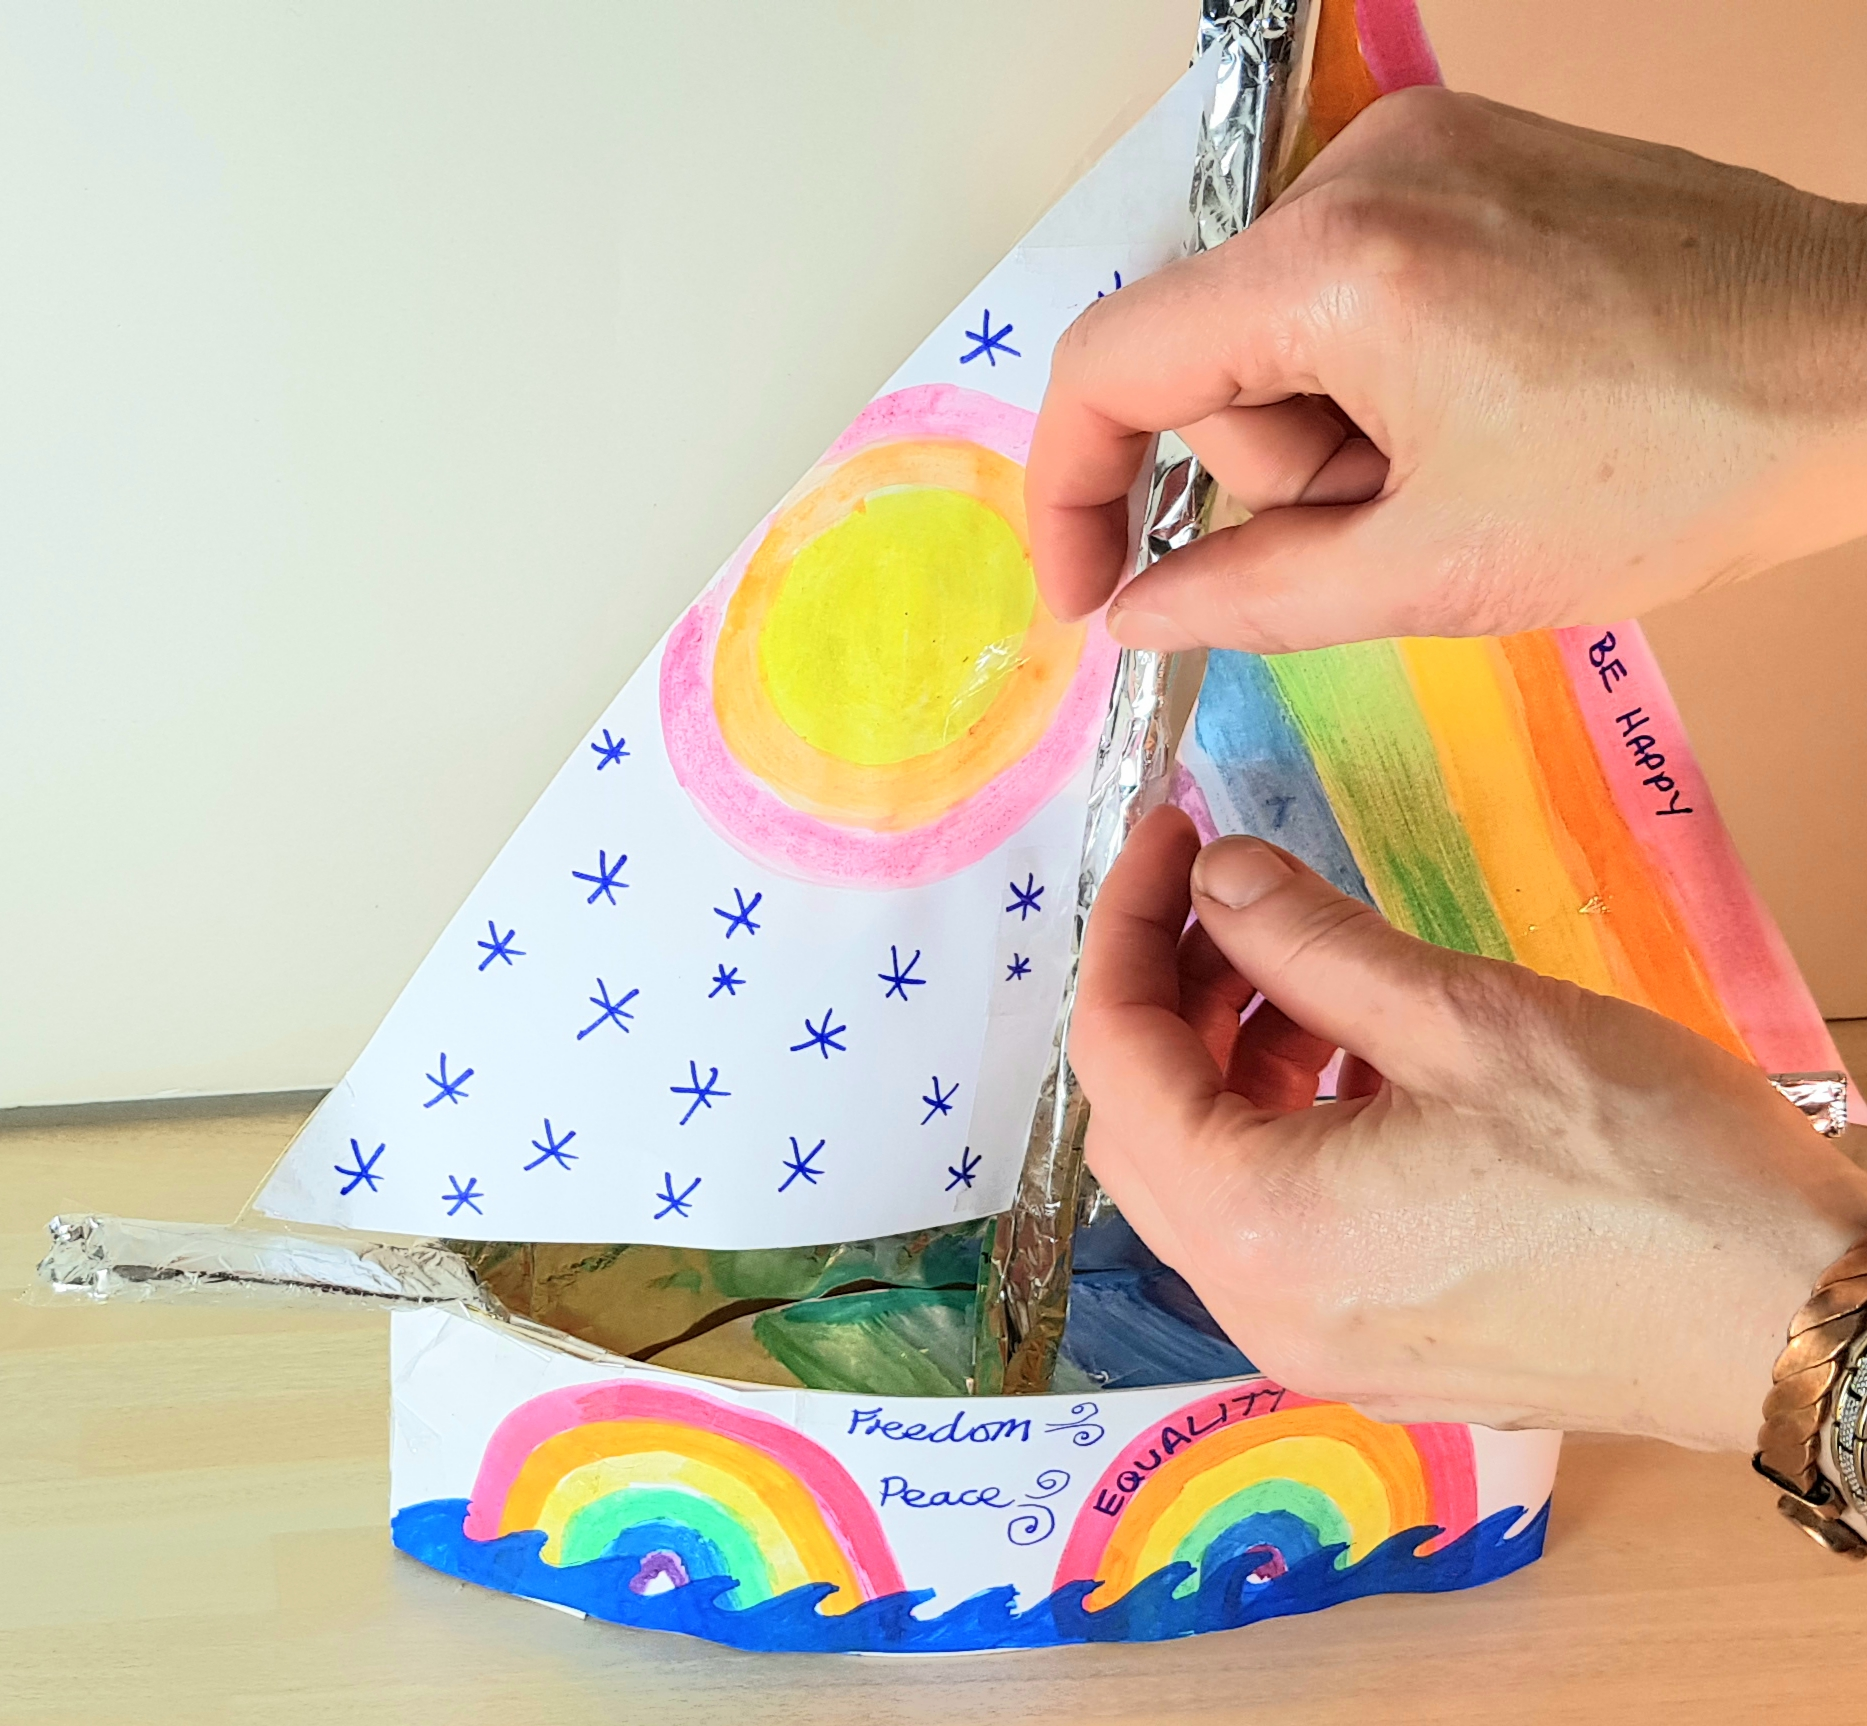 A ship has been made out of card and decorated with rainbow colours. Someone is adding a second sail with stars and a yellow sun to the mast.